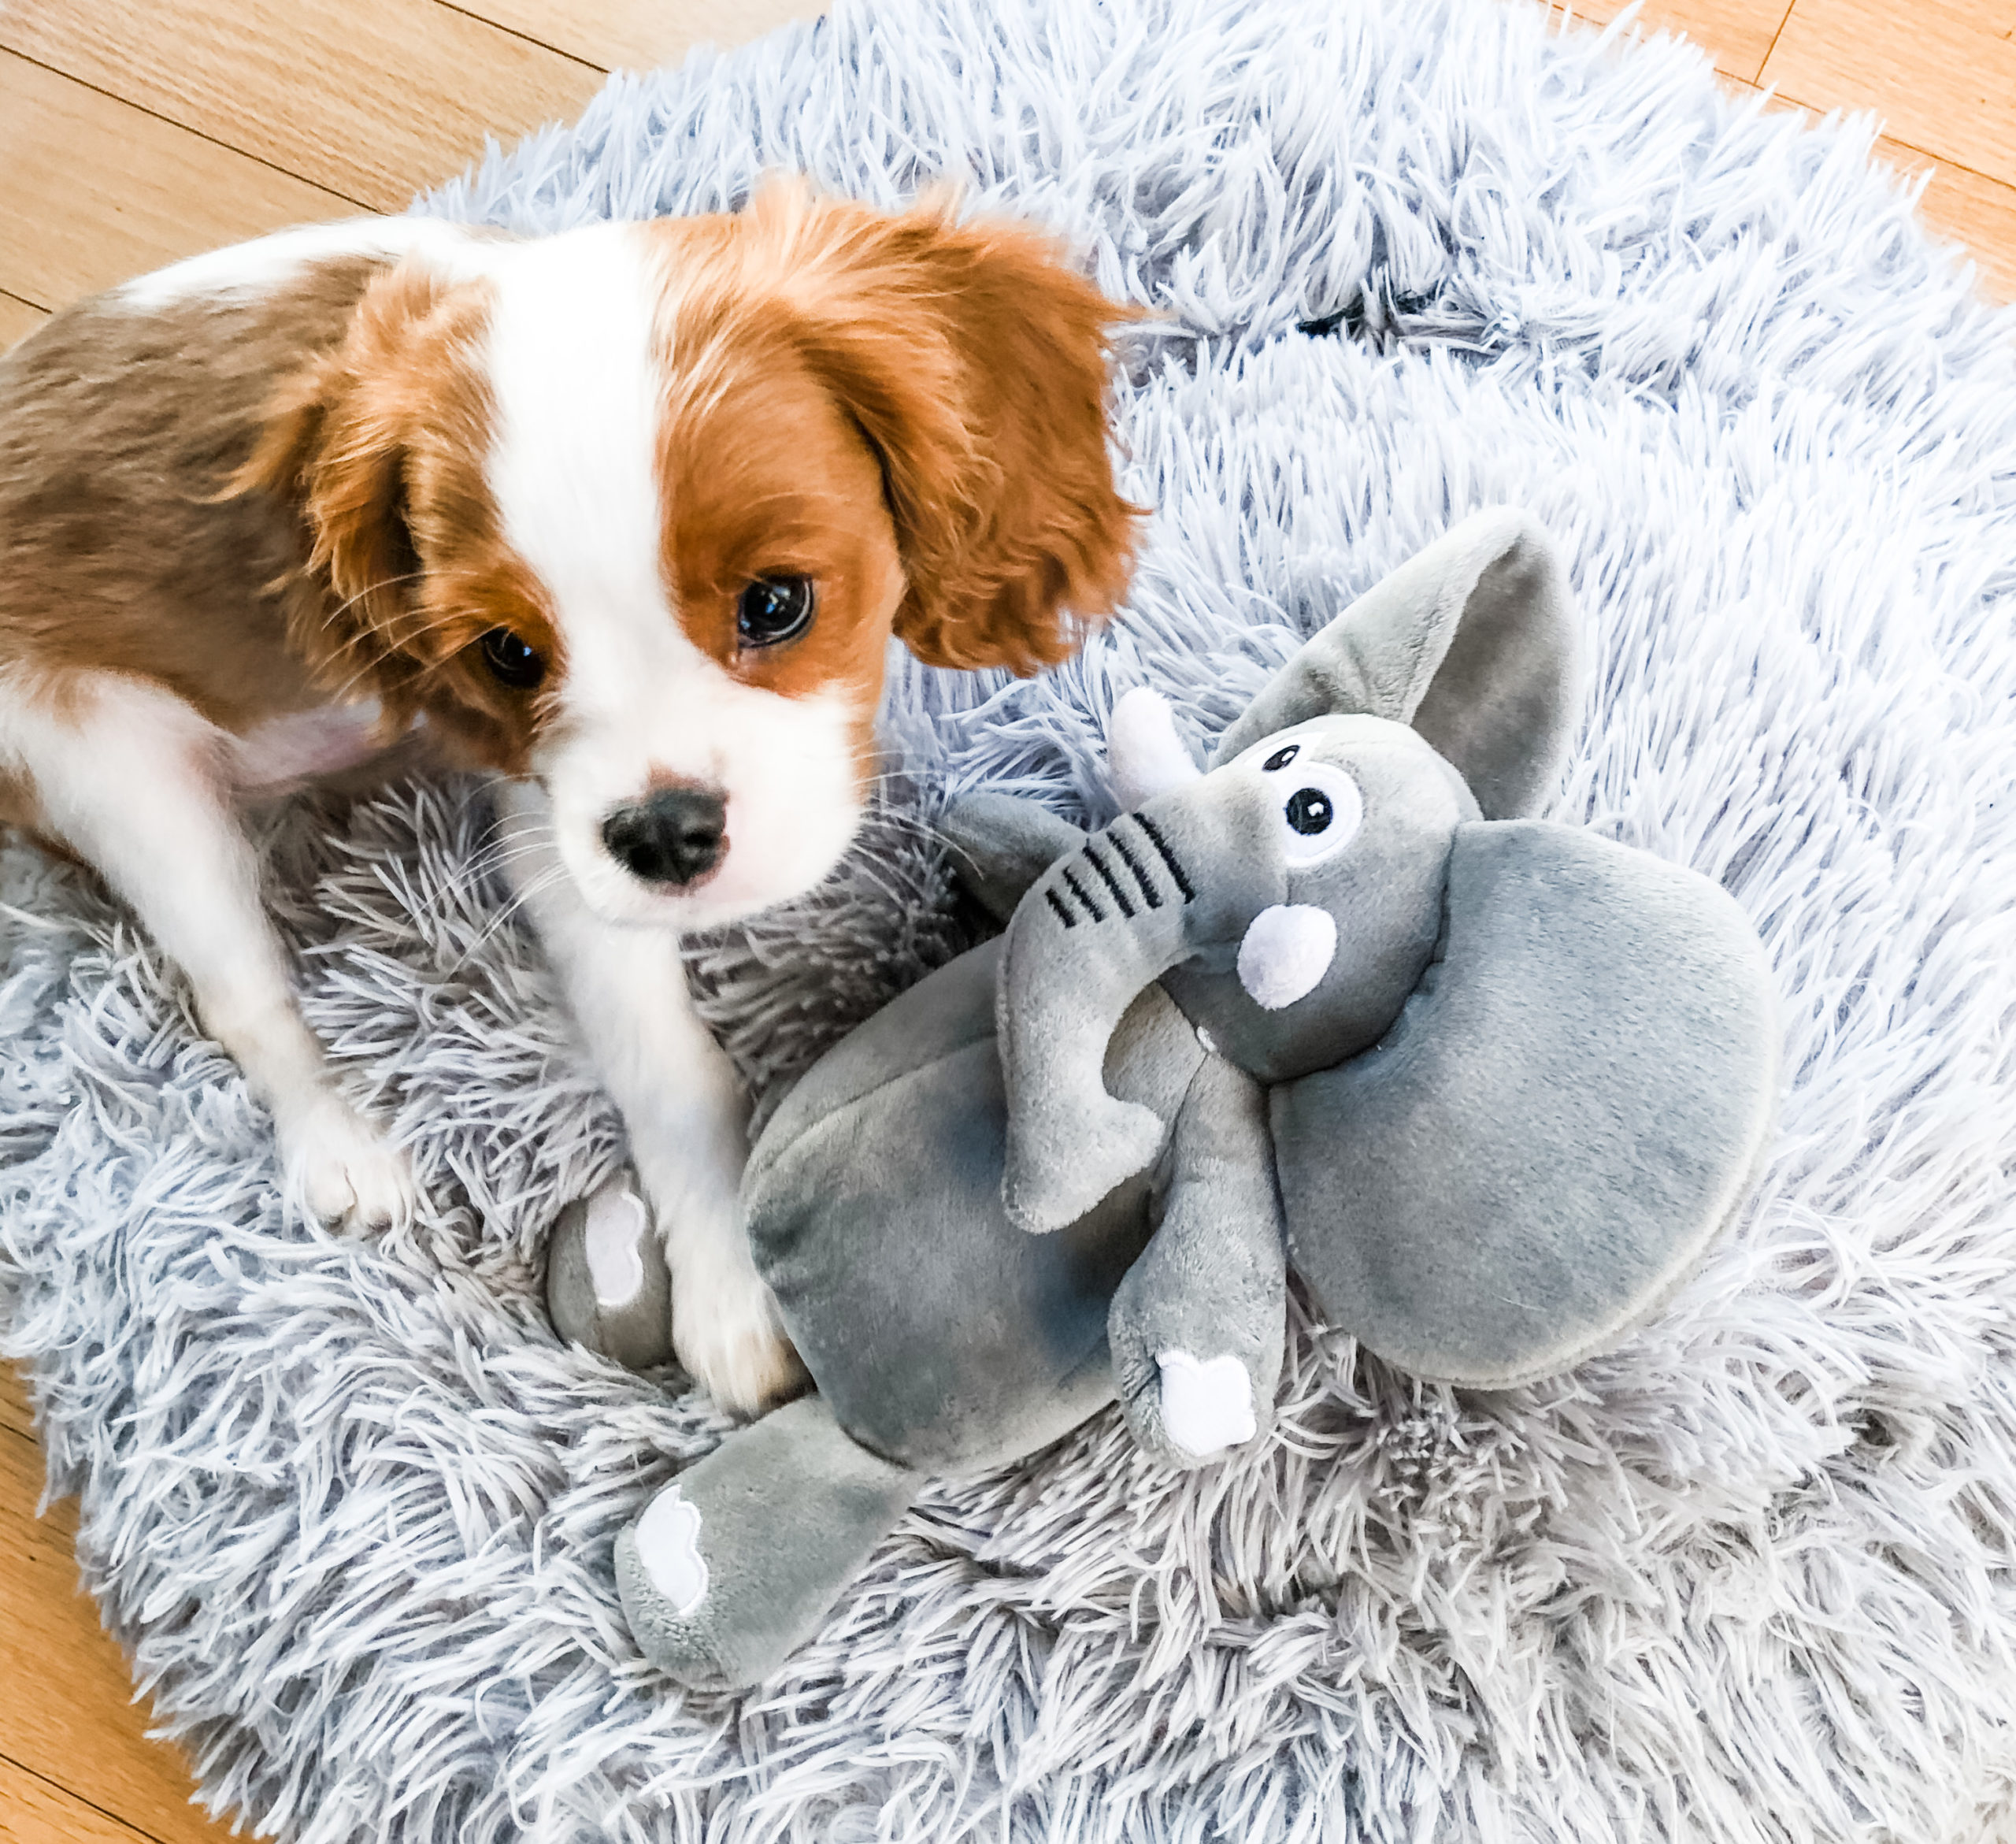 Dog on Bed with Elephant